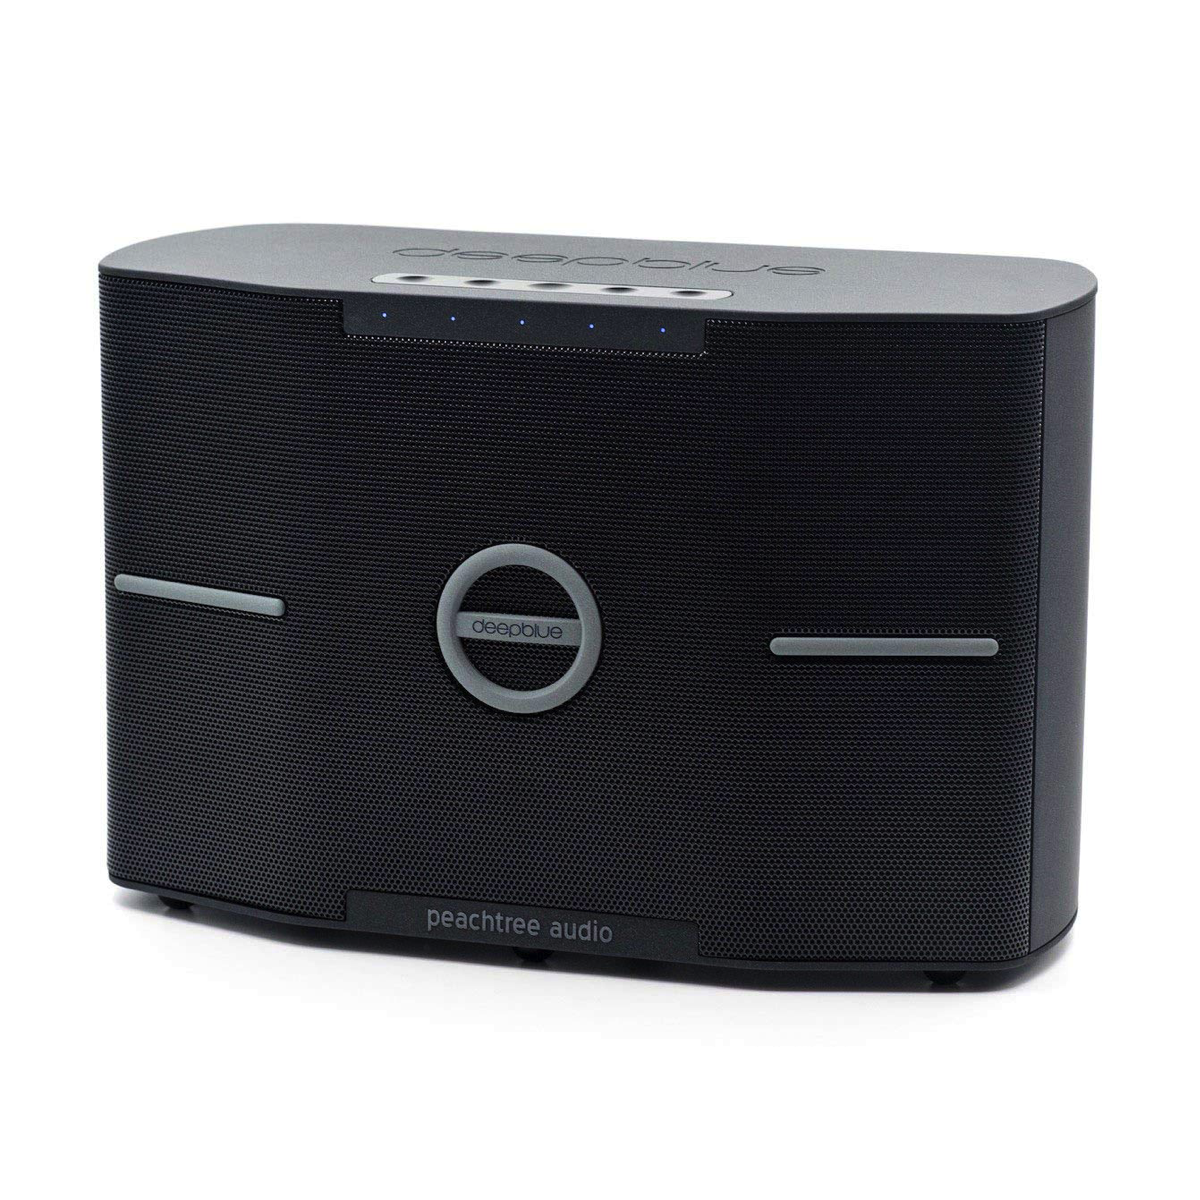 Peactree Audio deepblue SKY (Wi-Fi and Multiroom Speaker), Peachtree Audio, Bluetooth Wifi Speaker - AVStore.in